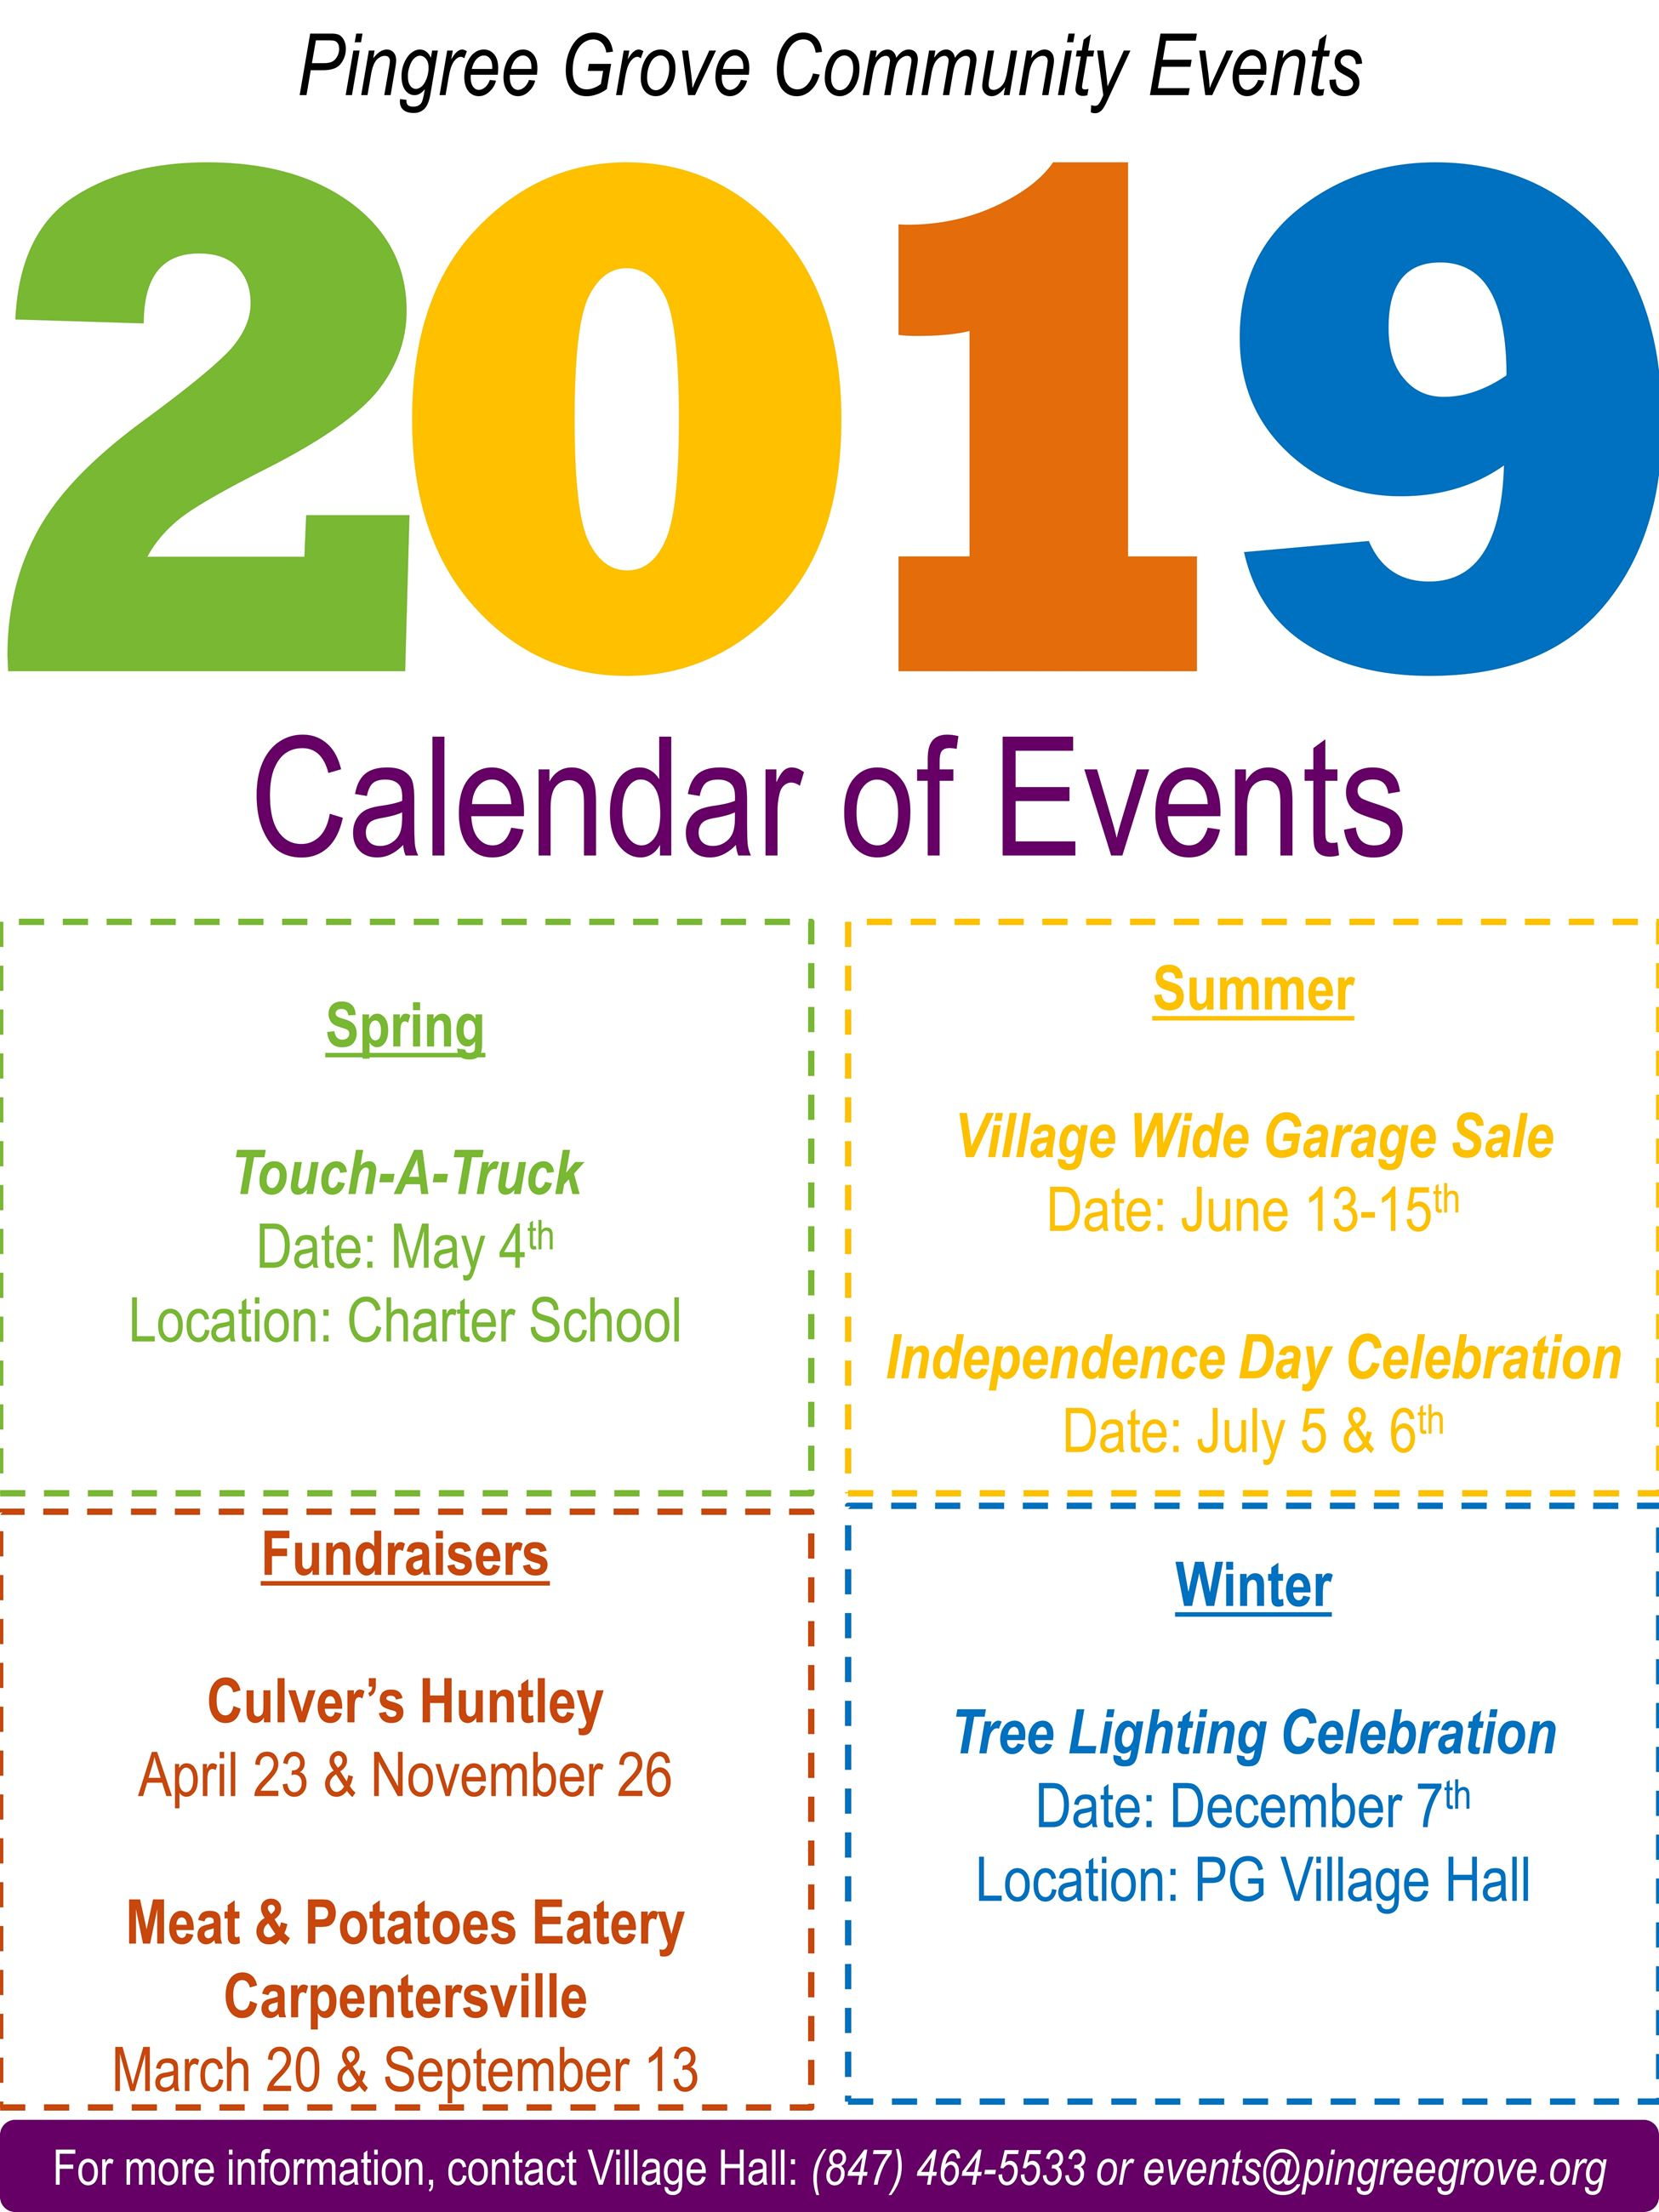 PG_Calendar of Events_2019 updated_001